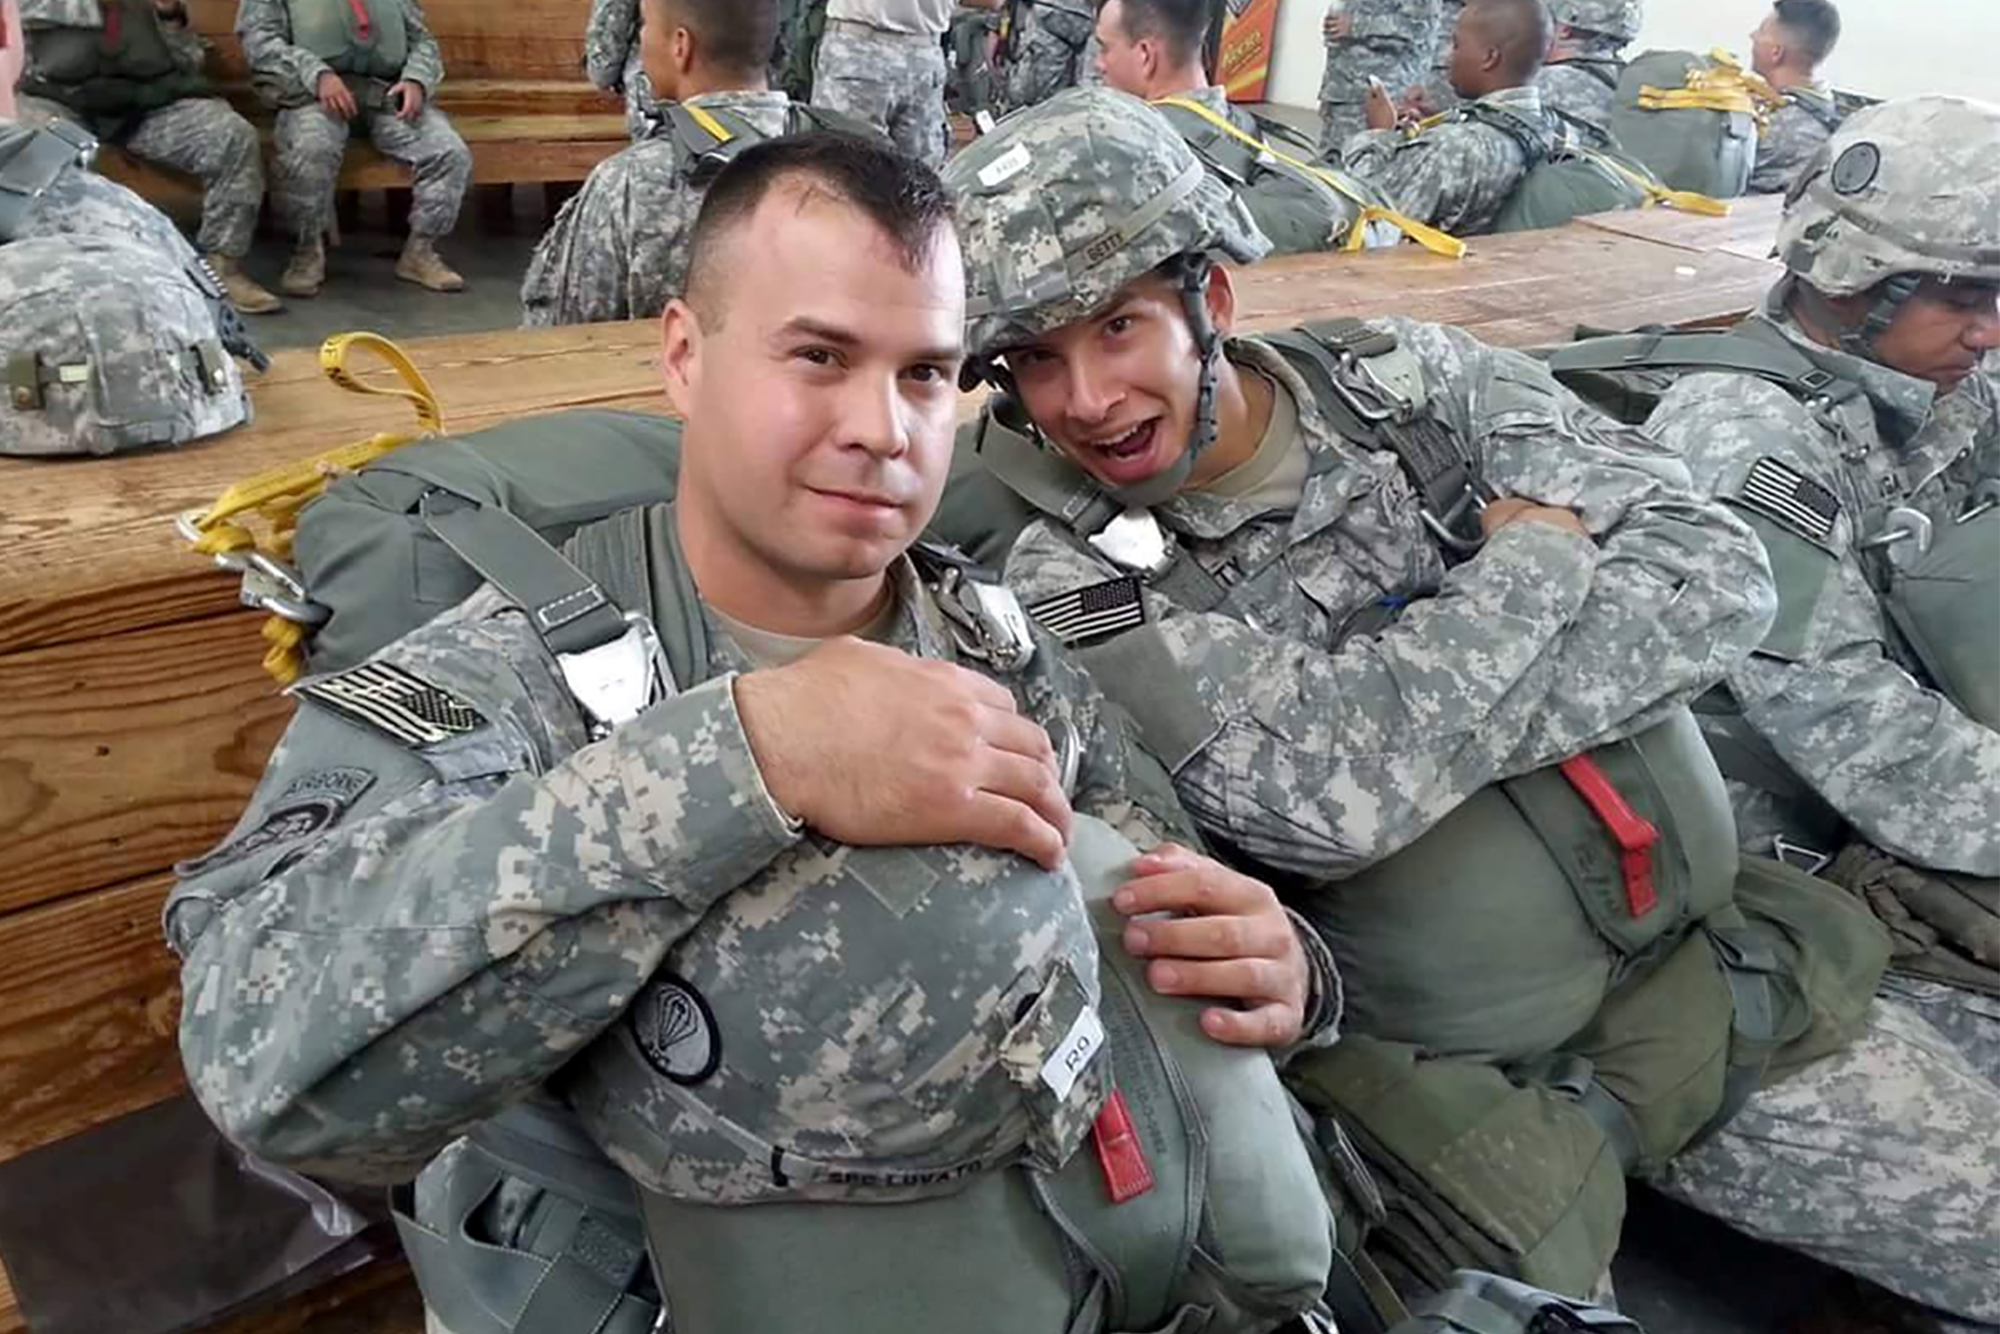 Military Us Army Scammer Pictures 2018 | Army images